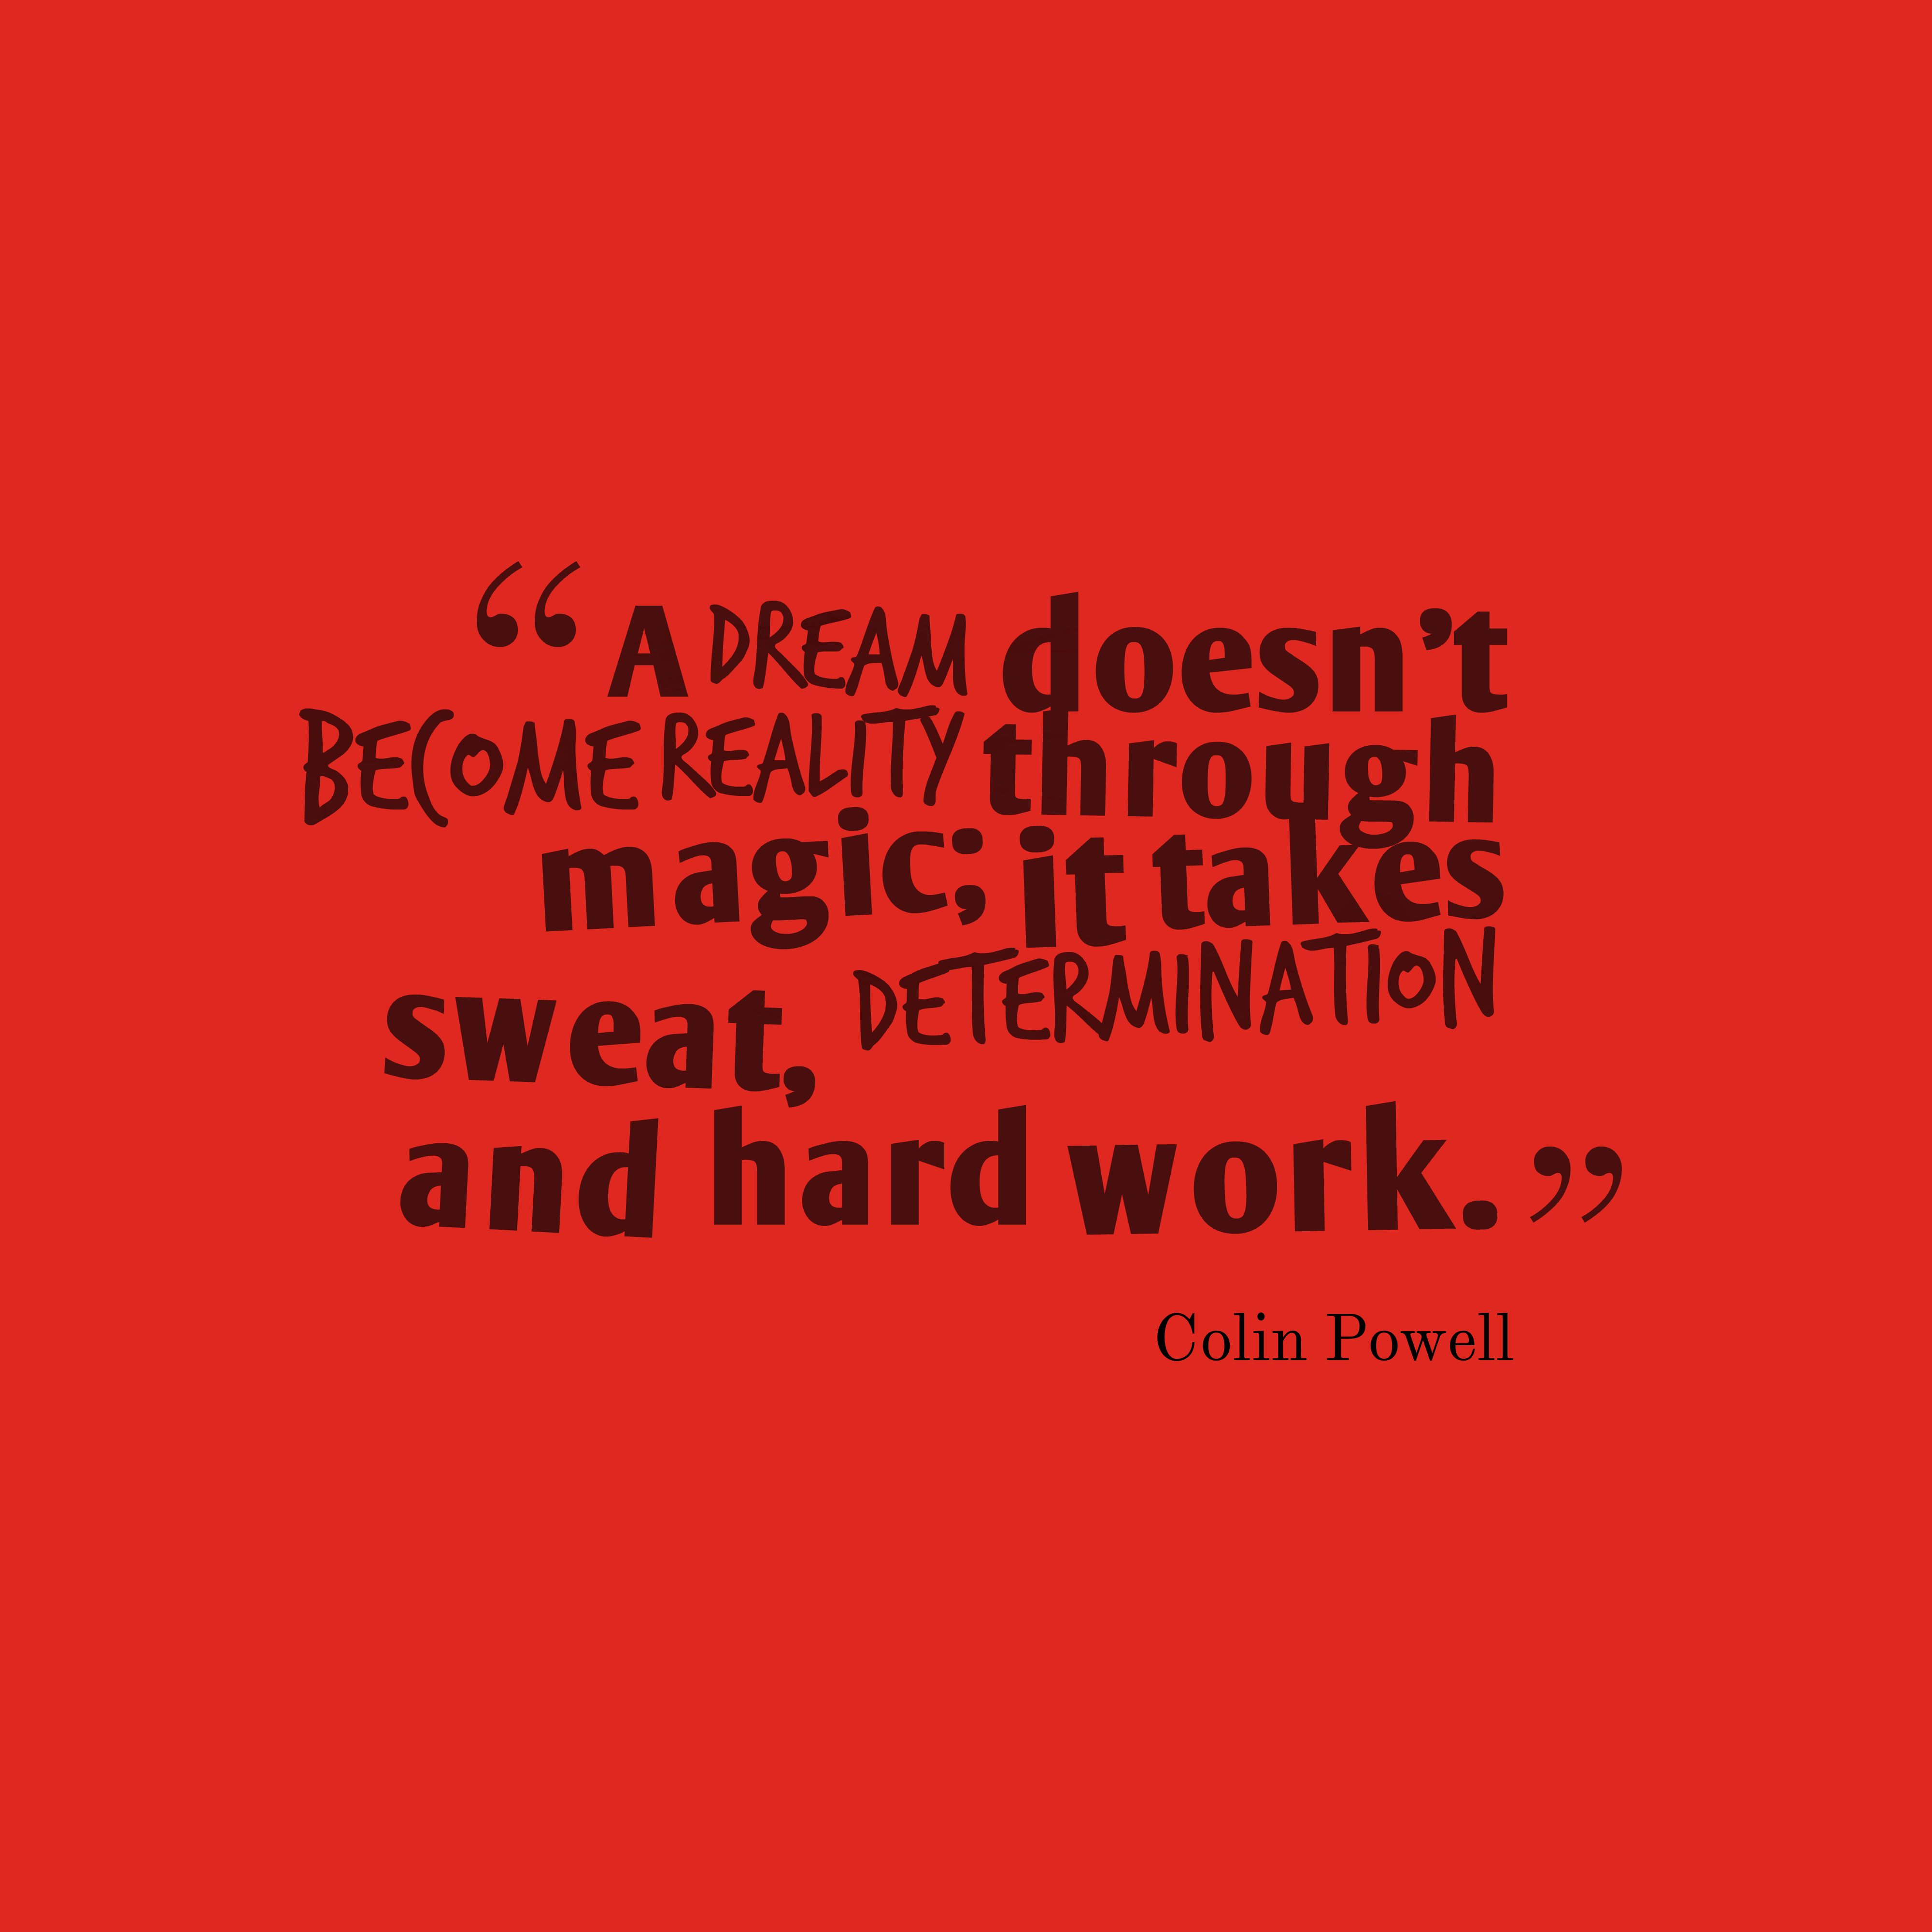 Quotes About Hard Work And Dreams: Quotes About Dreams Becoming Reality (29 Quotes